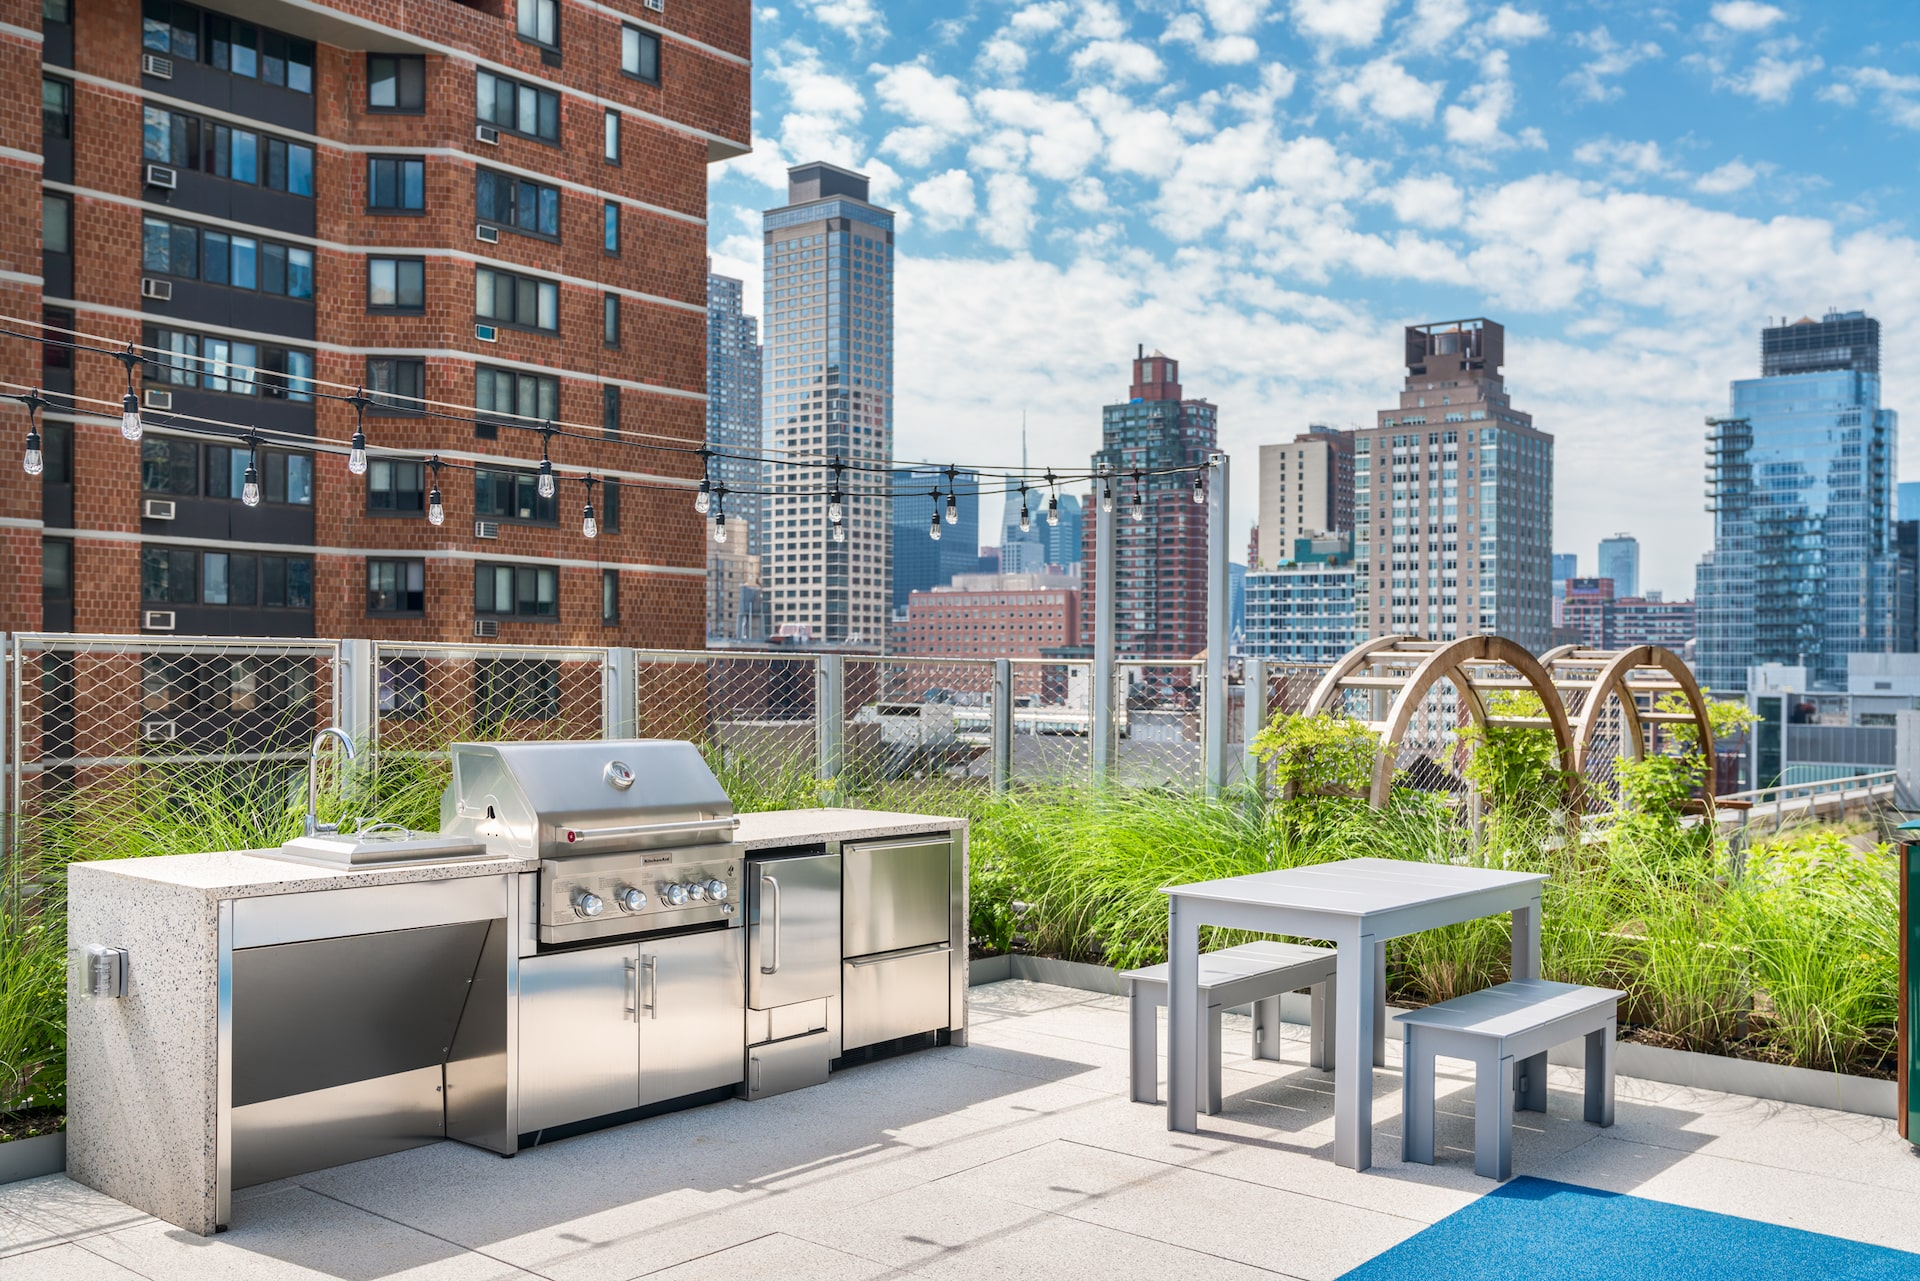 101 West End Avenue Amenities grill